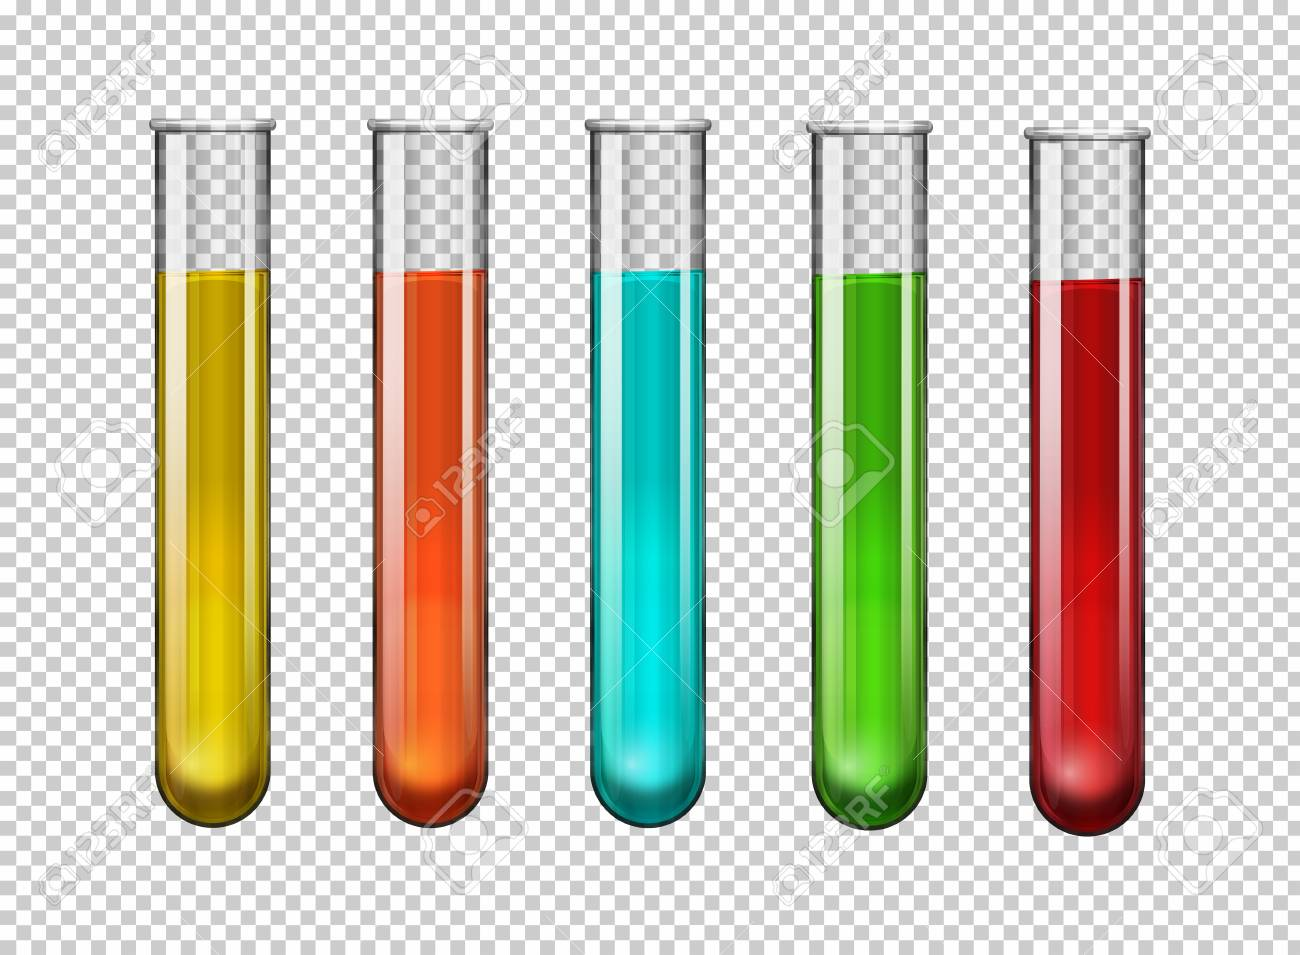 Colorful chemical in test tubes illustration - 77999807